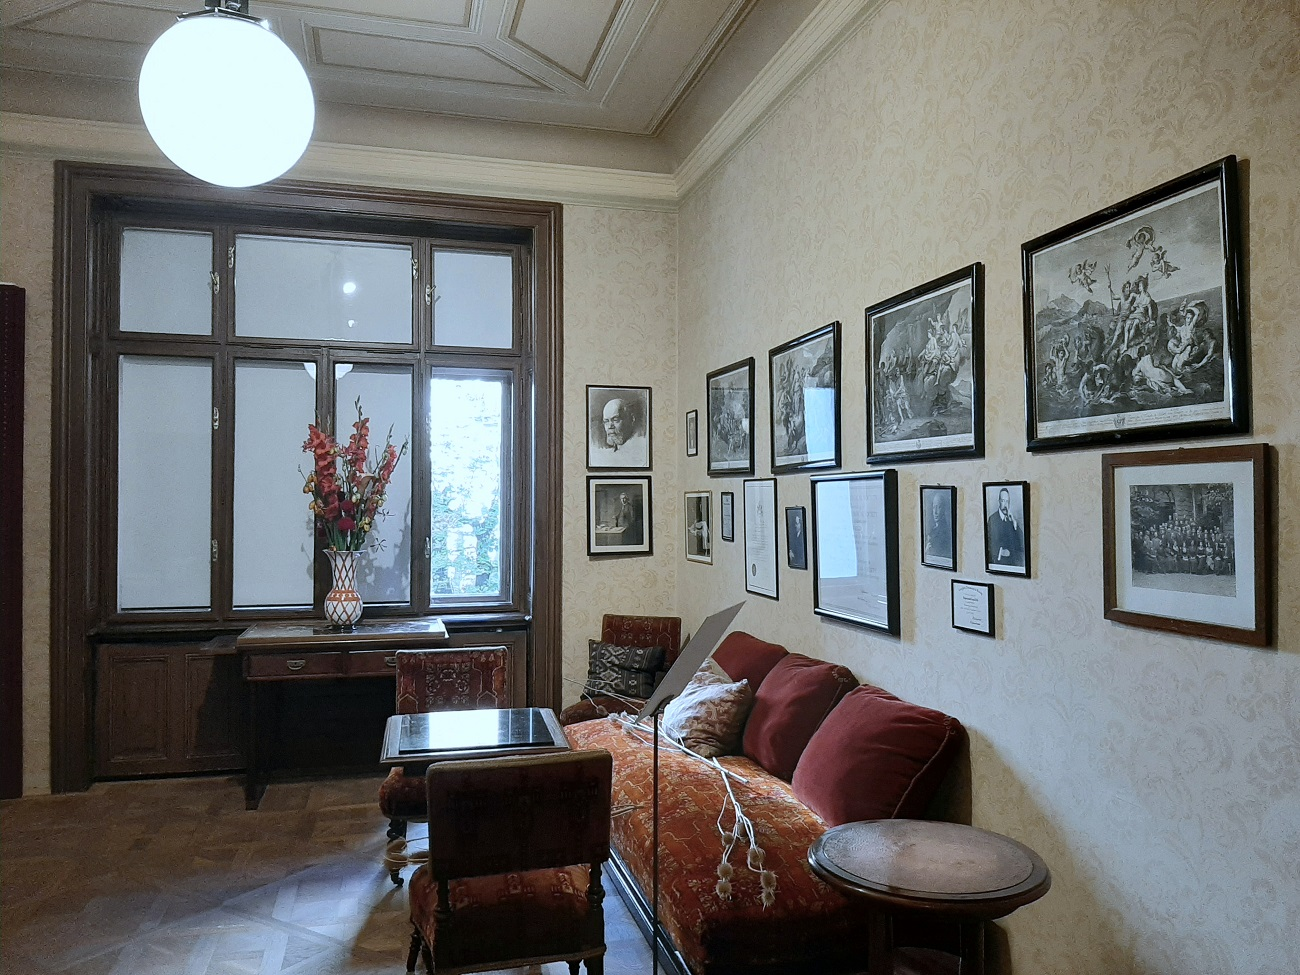 Sigmund Freud Museum, September 2020